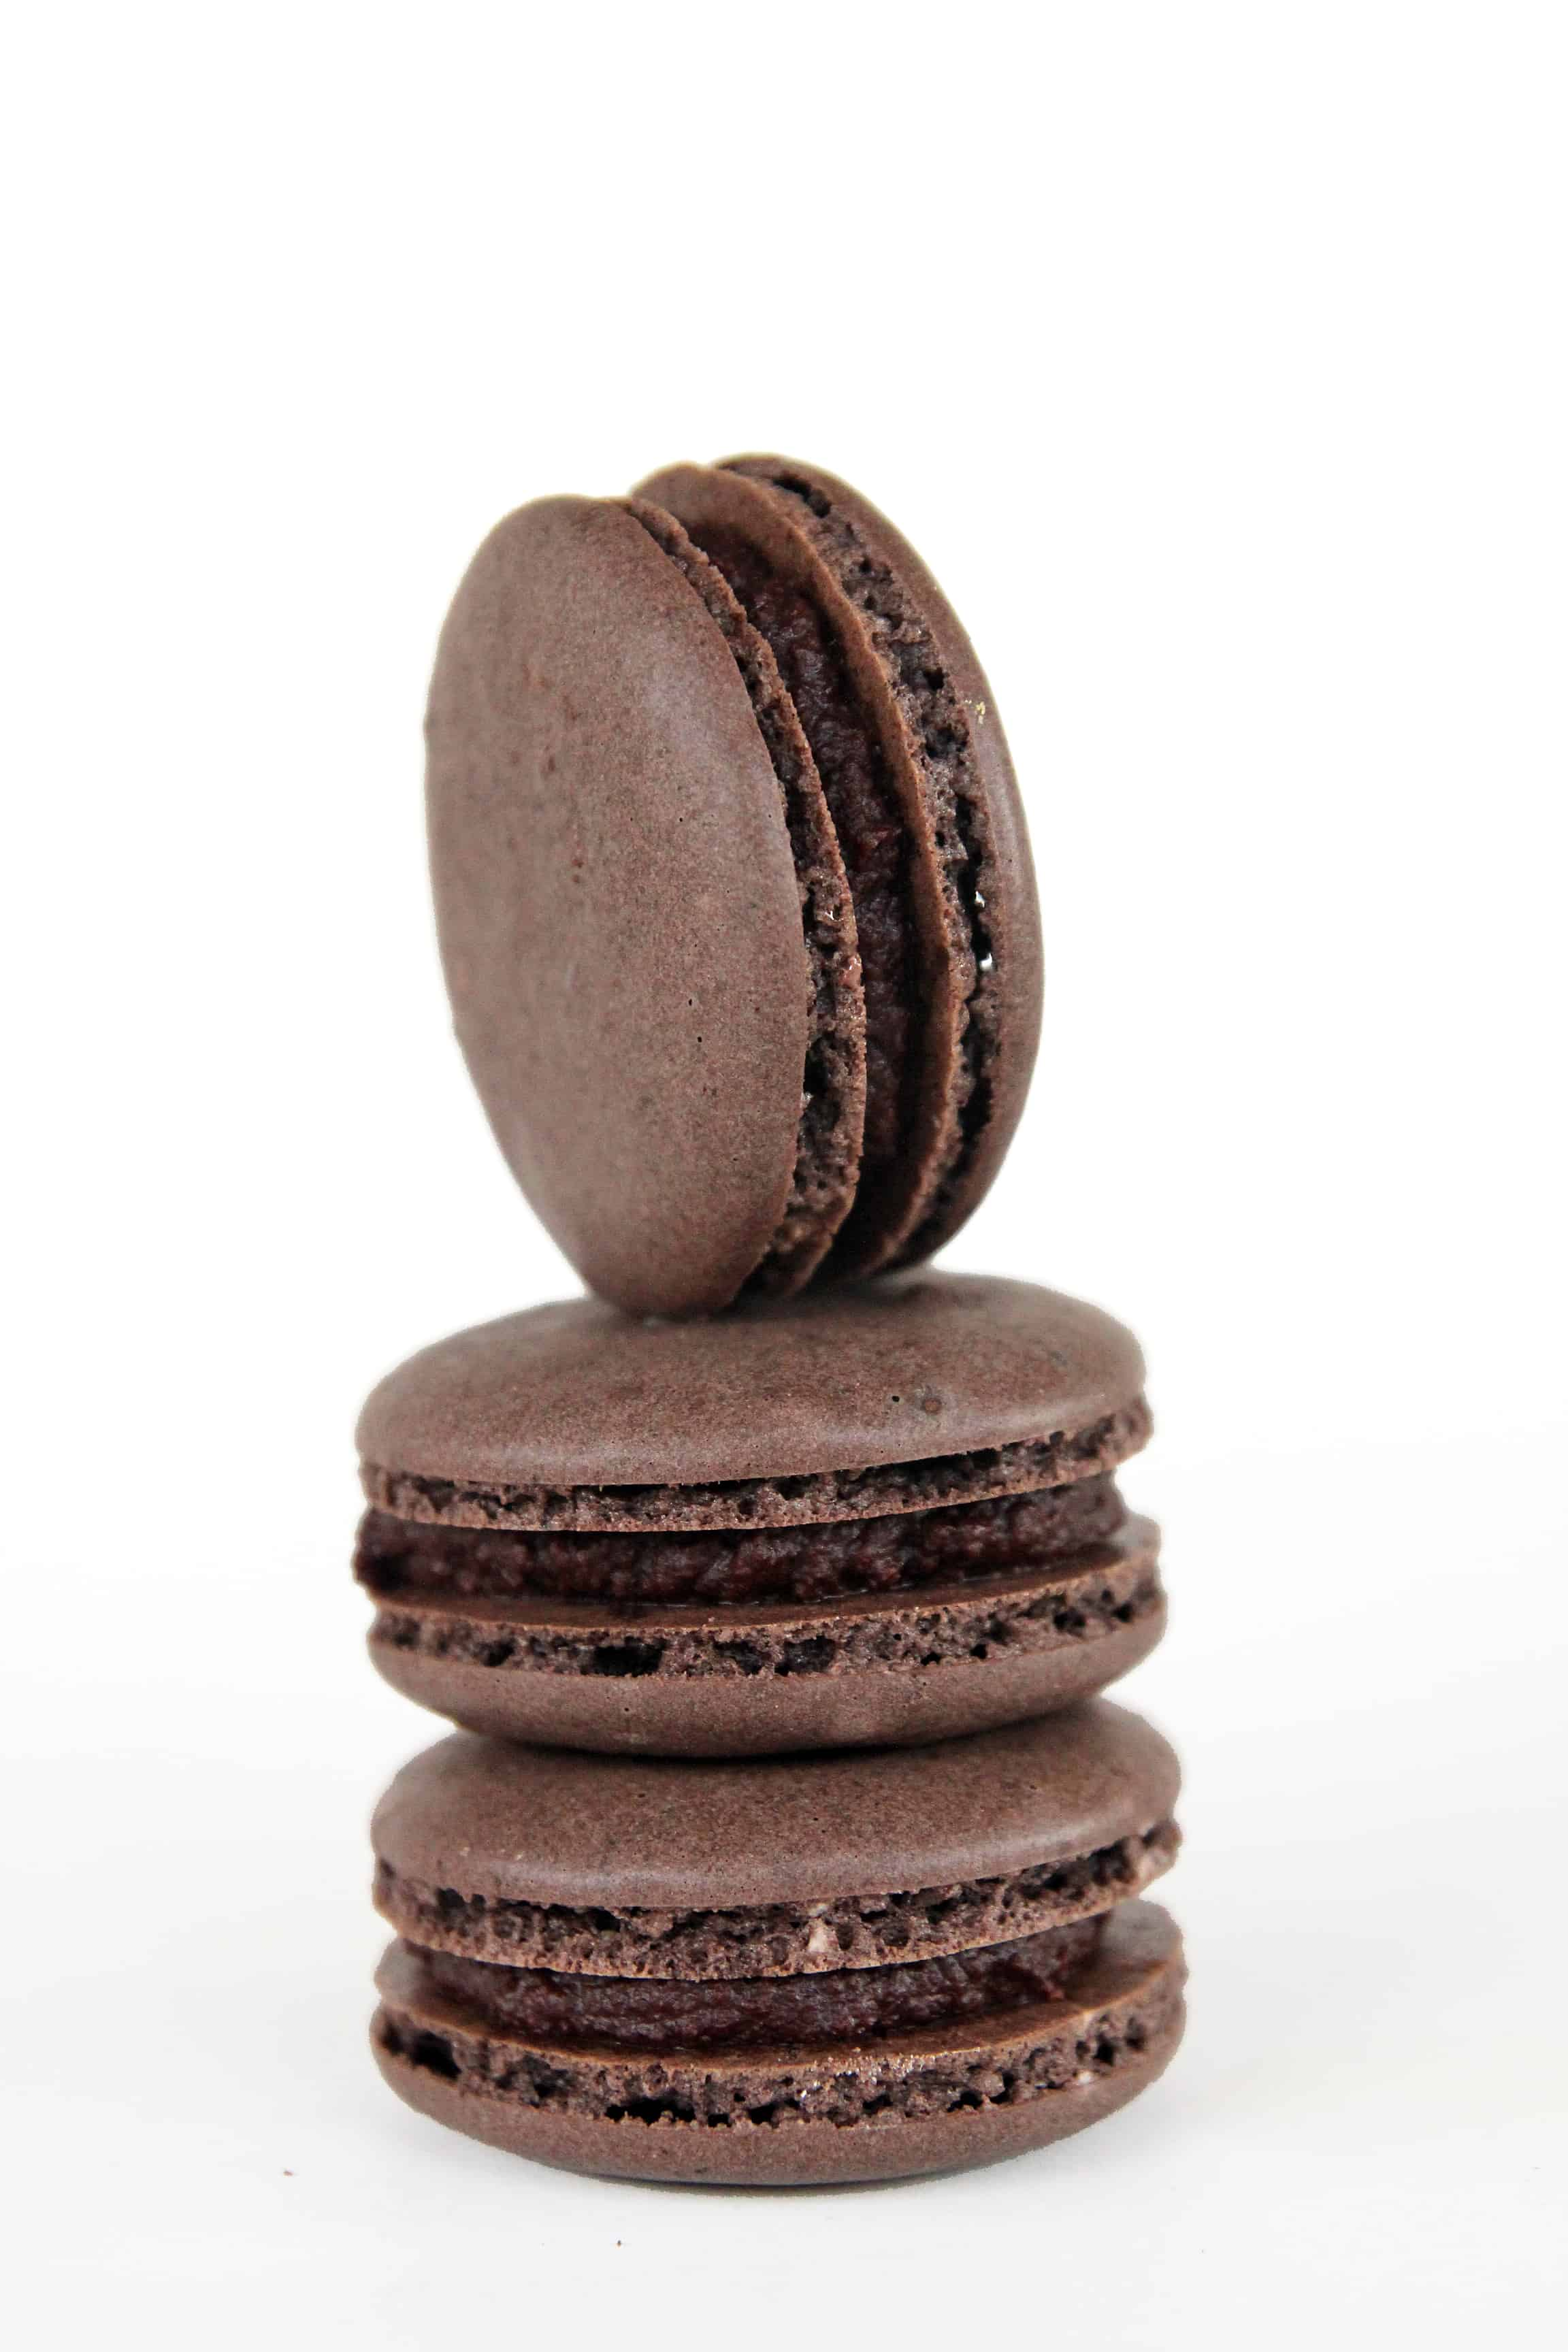 12 Days of Giveaways: Hot Chocolate macarons